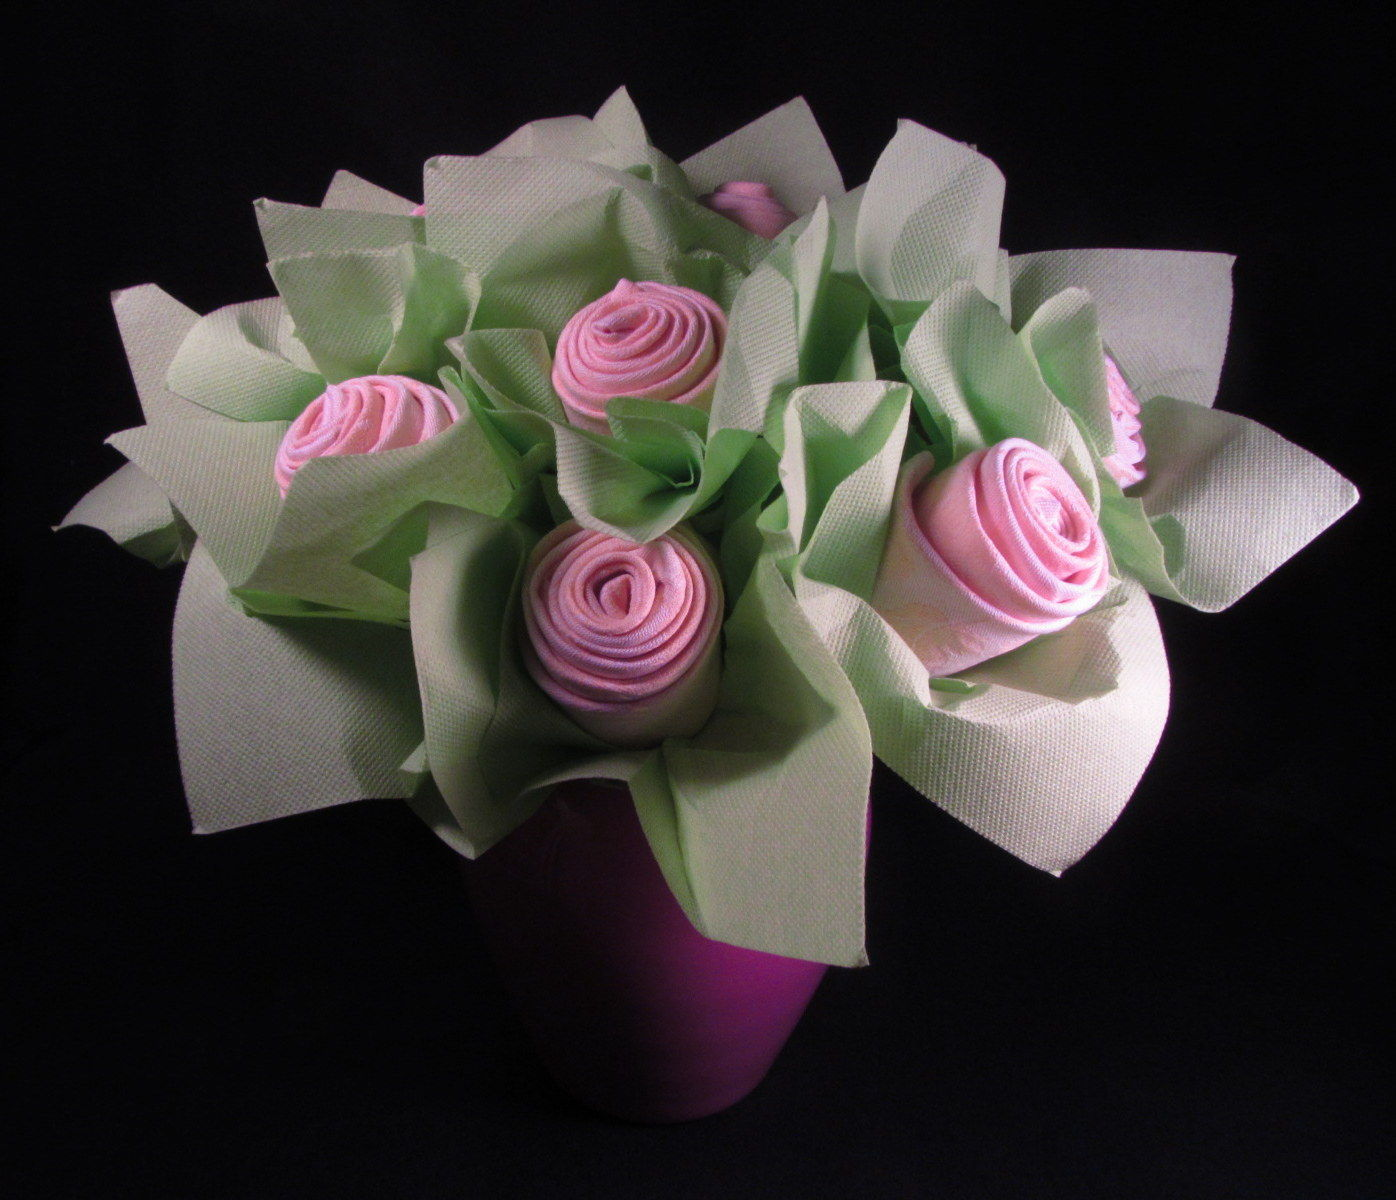 Bouquet de roses en serviettes le palais des saveurs for Pliage serviette rose